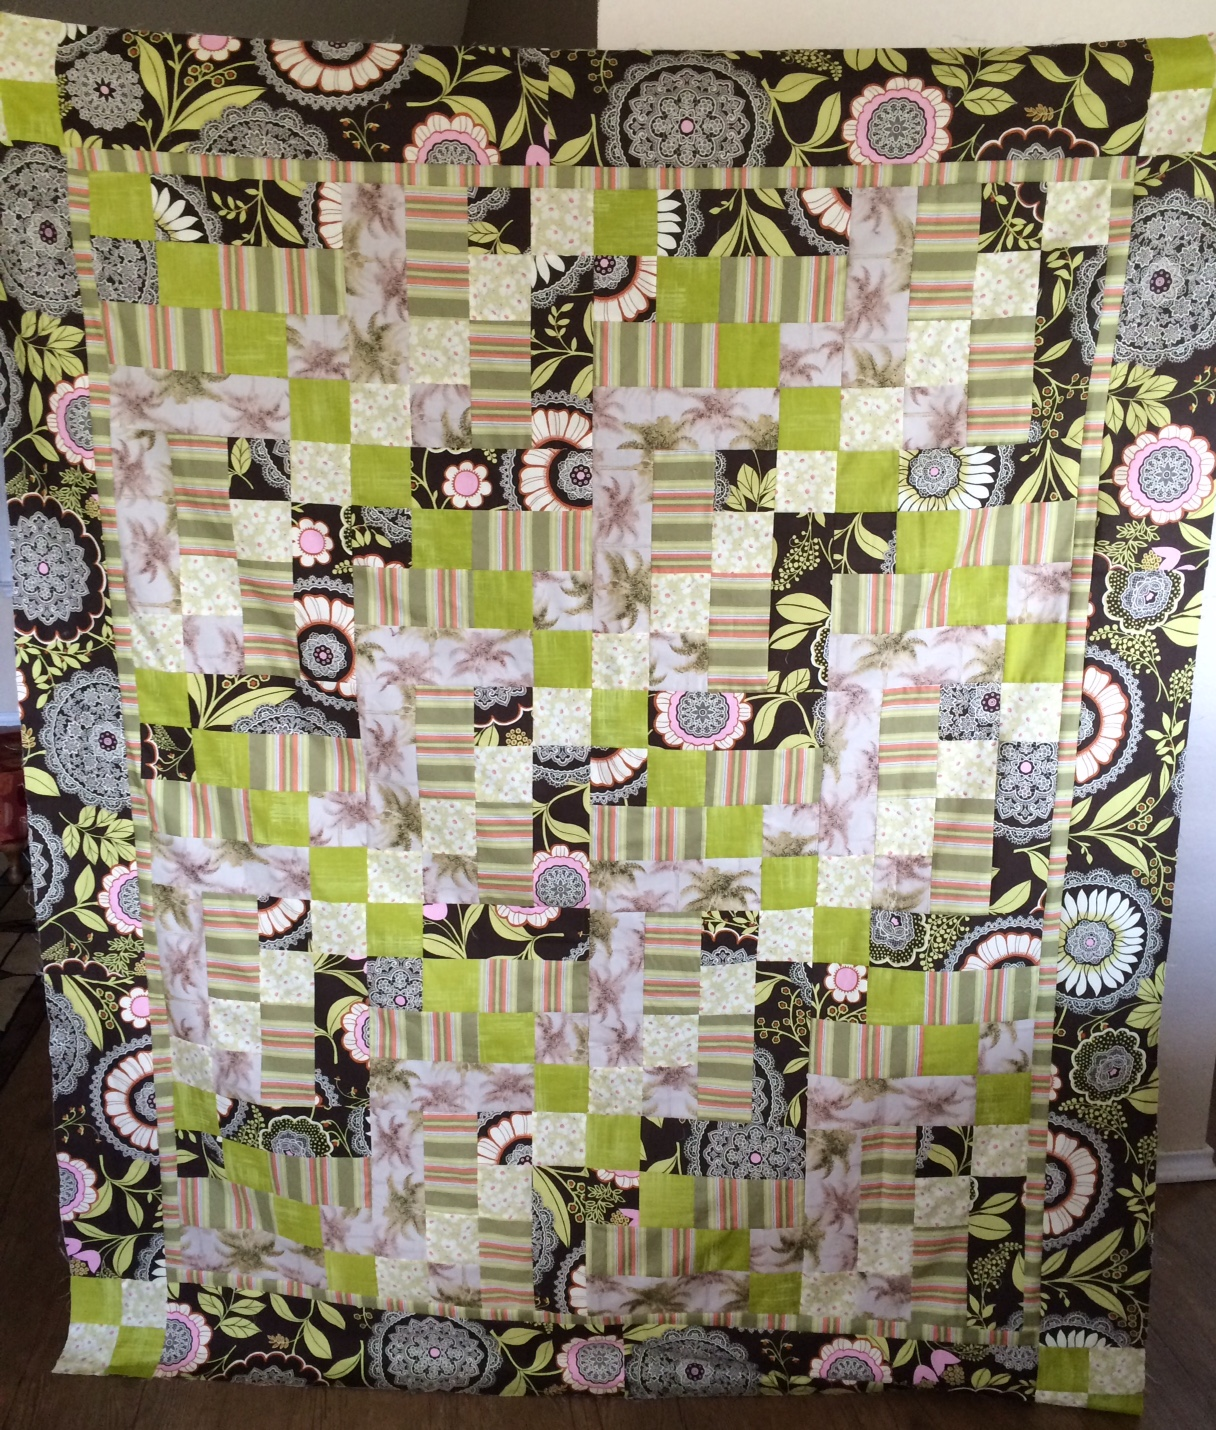 Cindy's Scrapped Quilt